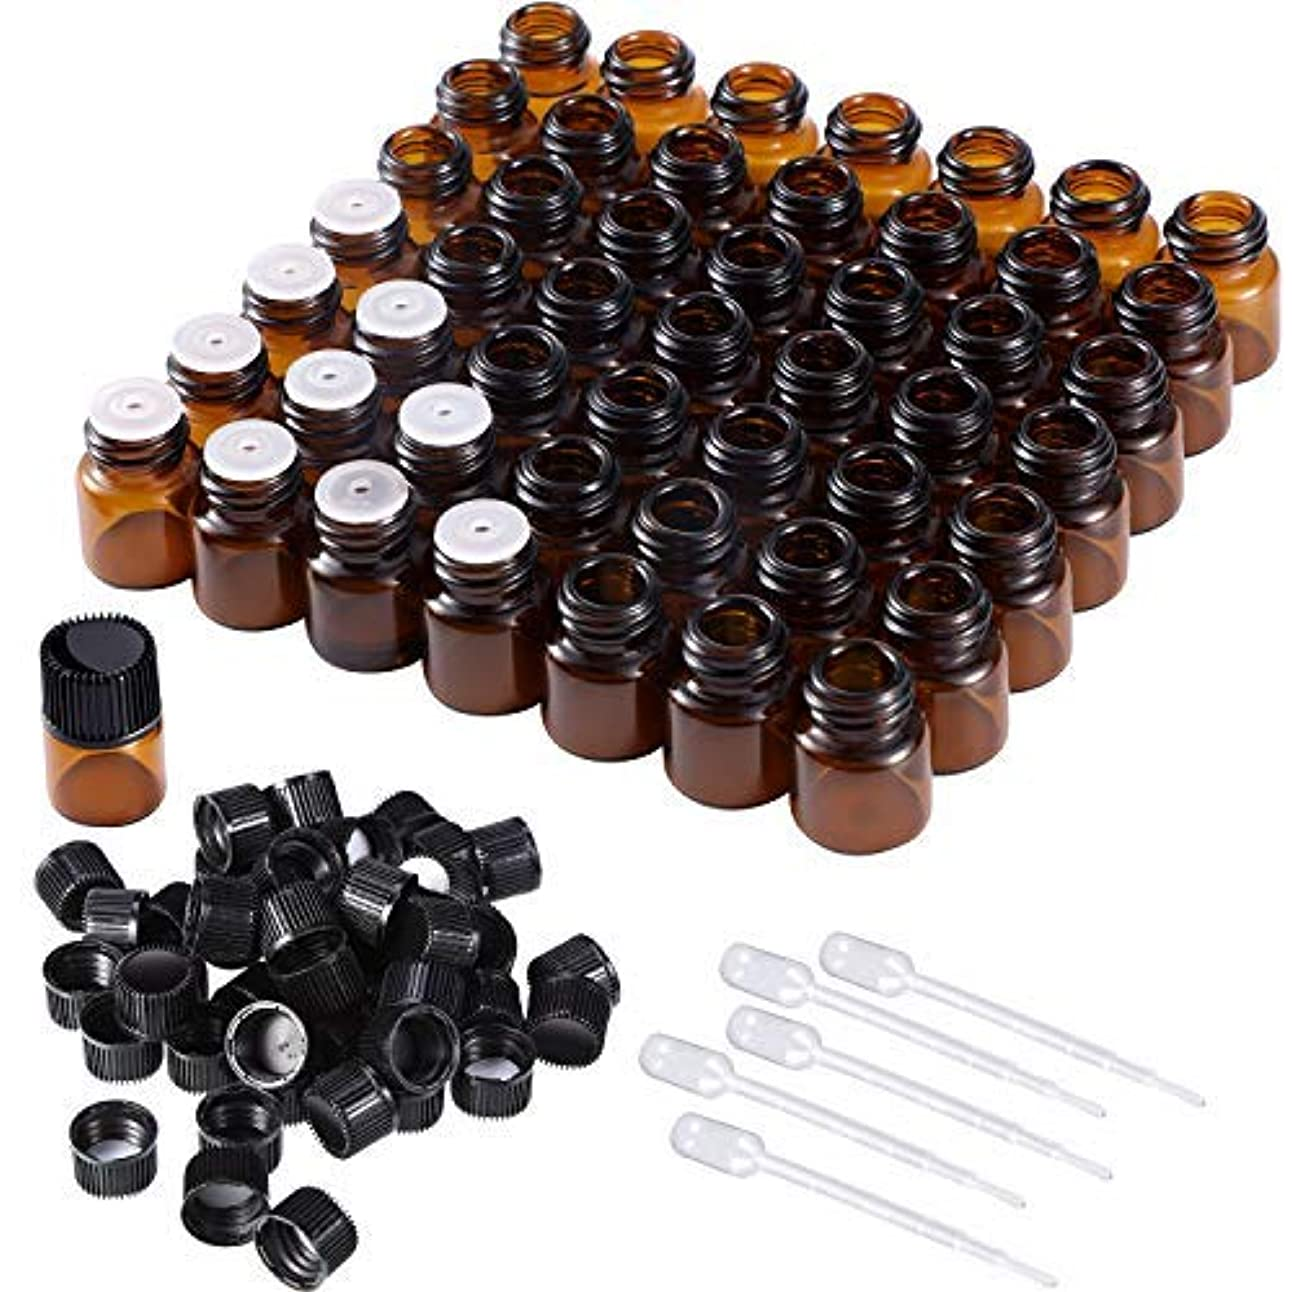 磁気バタードロップ50 Pieces 1 ml Mini Amber Glass Vial Bottles Essential Oil Bottles with Orifice Reducers Screw Caps and 5 Pieces...